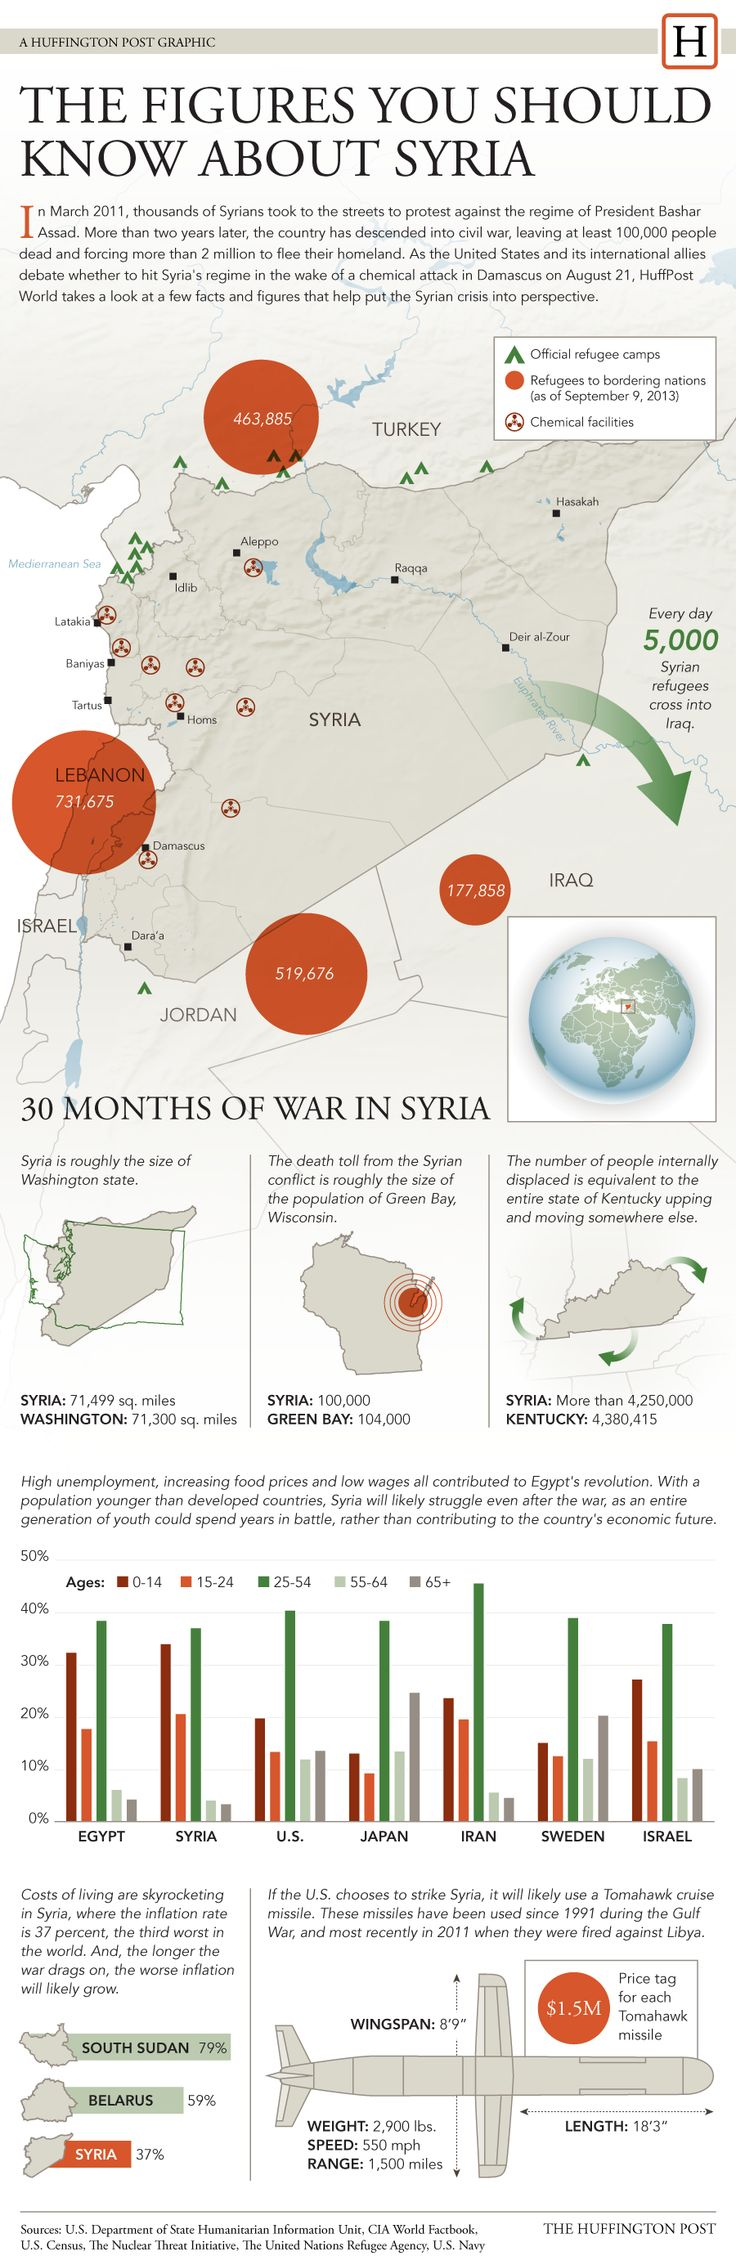 30 Months of War | Figures You Need To Know About The Ongoing Crisis in Syria | ALSO SEE -> Syrian Civil War: Not Just About Syria ... http://edition.cnn.com/interactive/2013/05/world/map-syria-neighbors/ Questions That Need to be Answered Before Attacking Syria ... http://natepyle.com/questions-that-need-to-be-answered-before-attacking-syria/